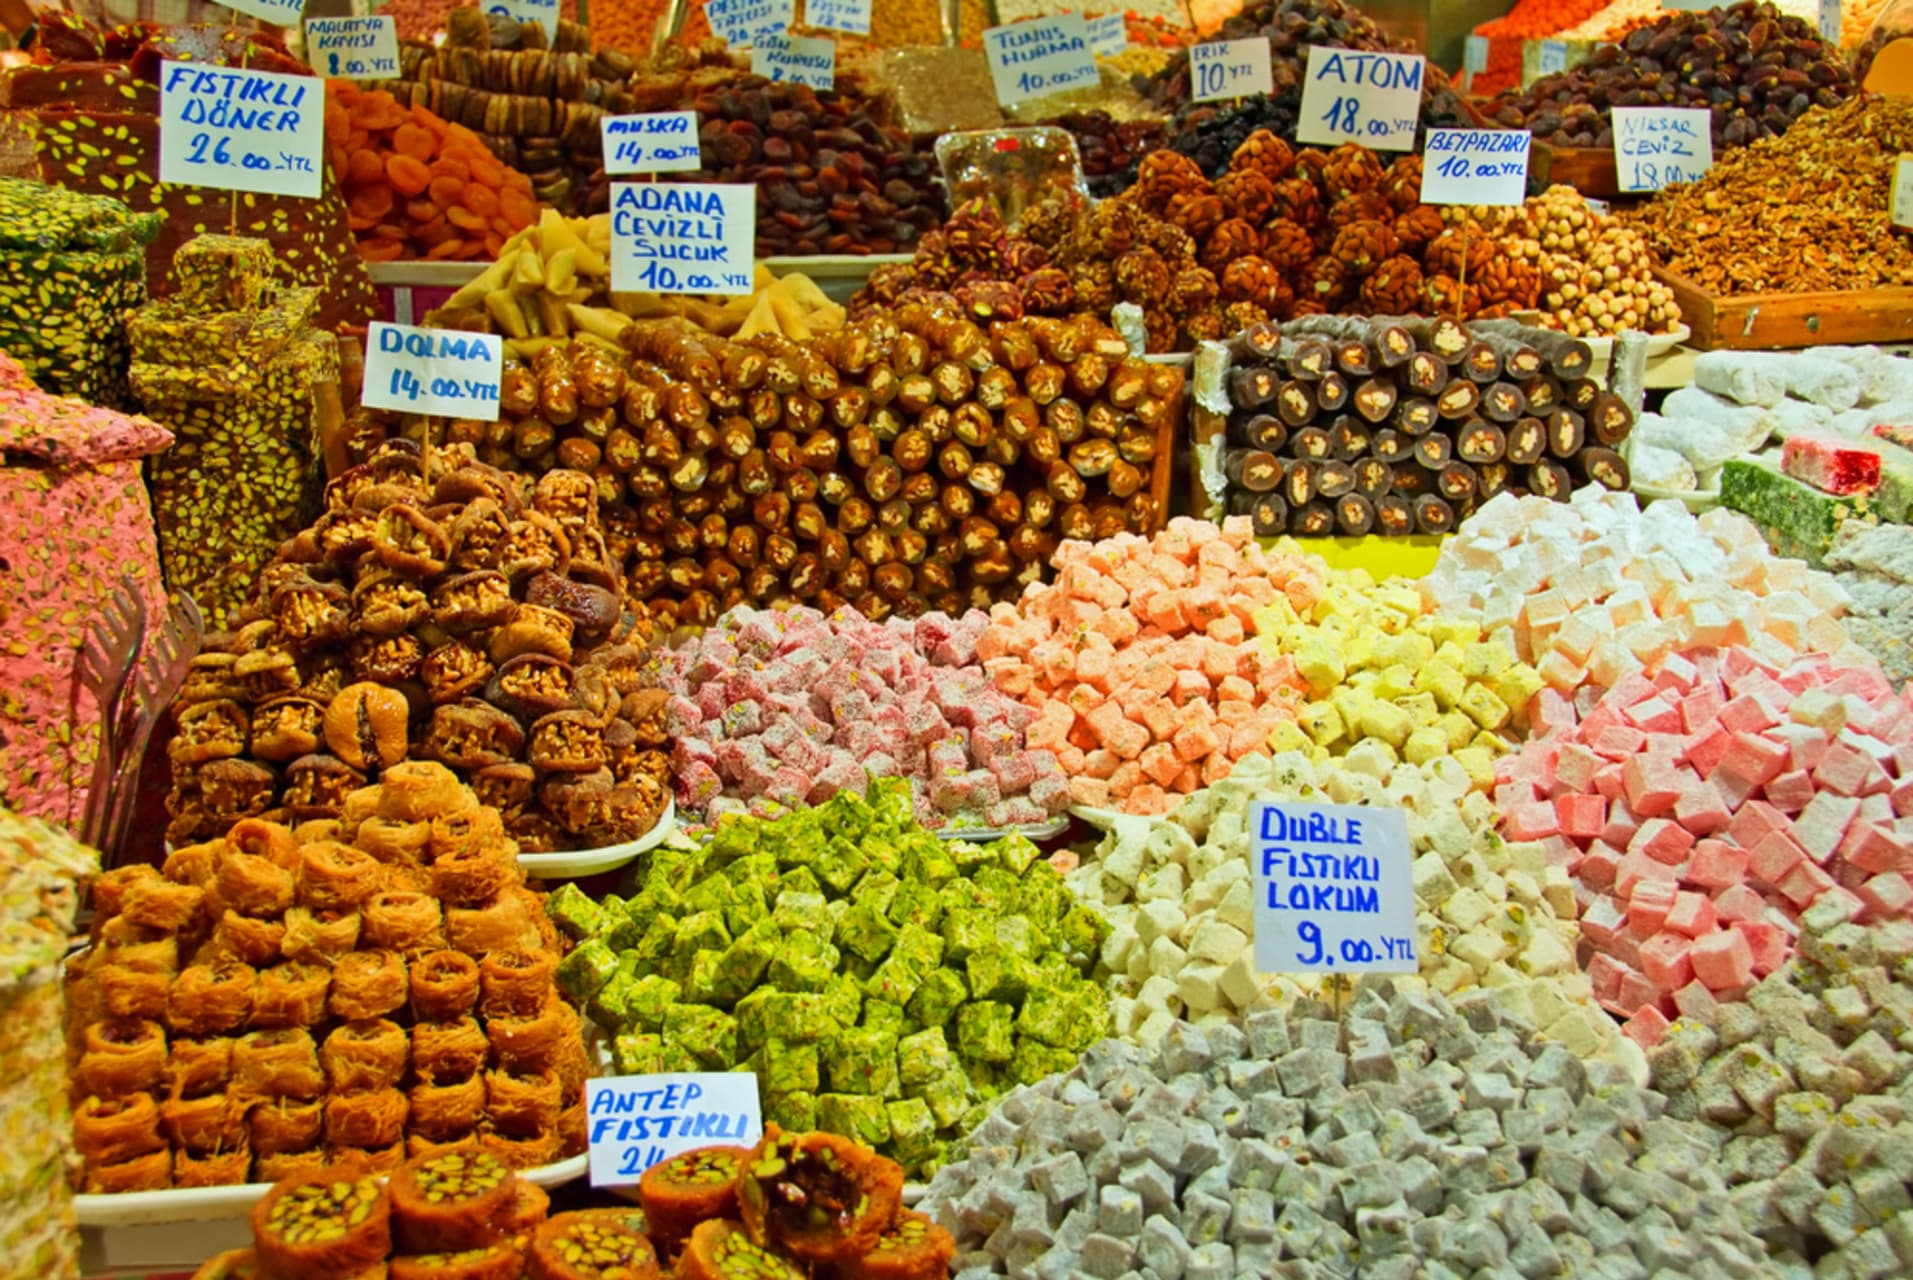 Istanbul - Food market on Asian side and delicacies of Turkey